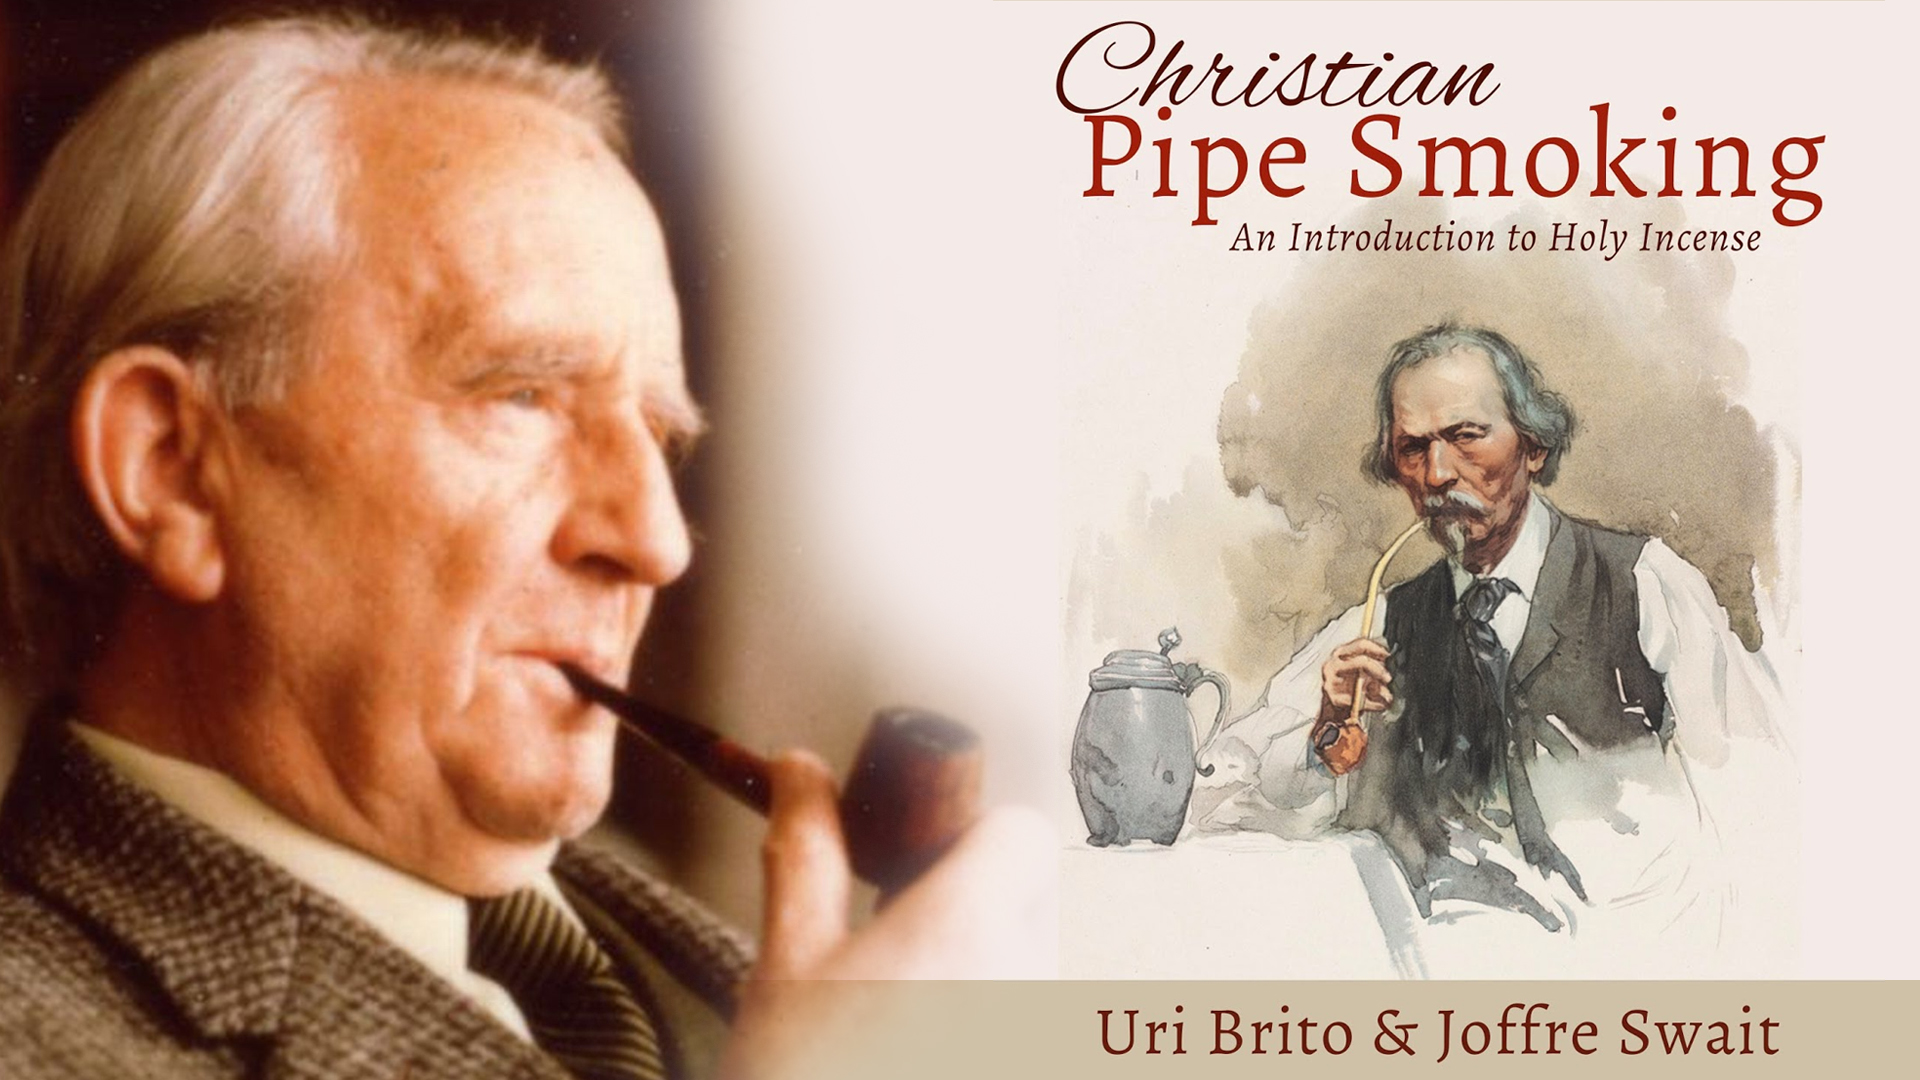 Christian Pipe Smoking: An Introduction to Holy Incense by Joffre Swait and Uri Brito